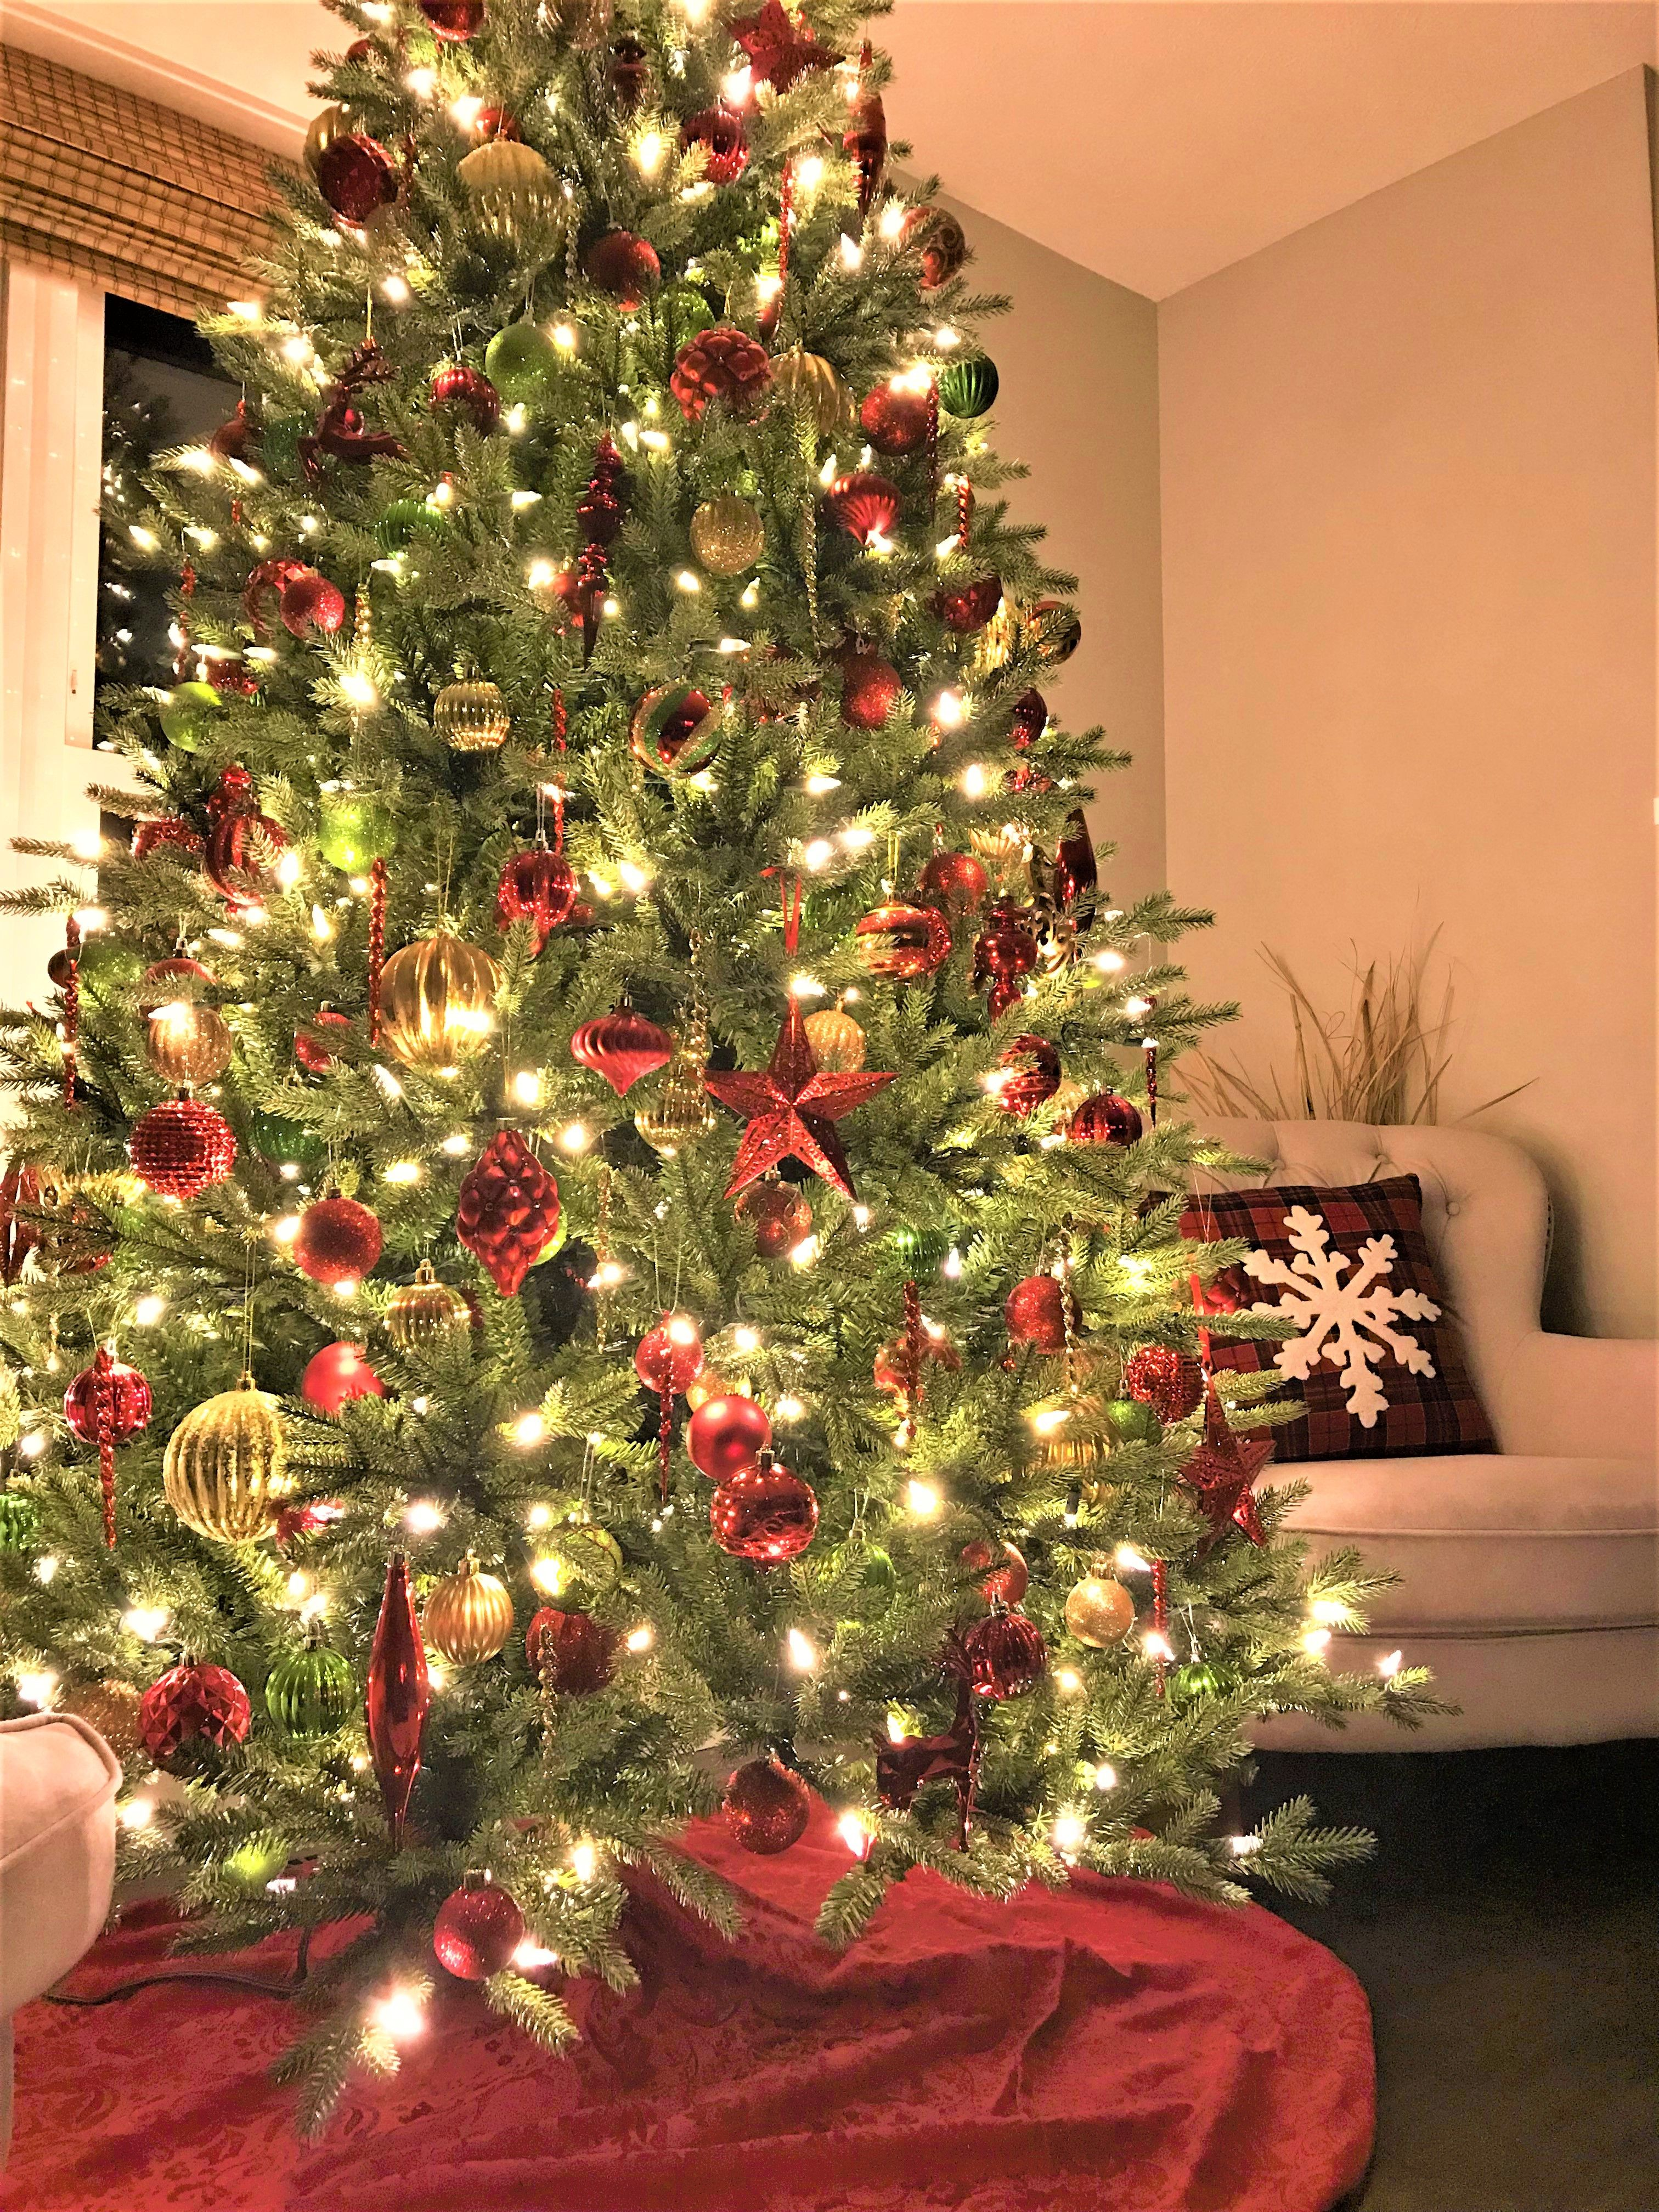 Christmas Traditional Colors Red Green Gold Gold Christmas Decorations Christmas Tree Colored Lights Christmas Tree With Coloured Lights